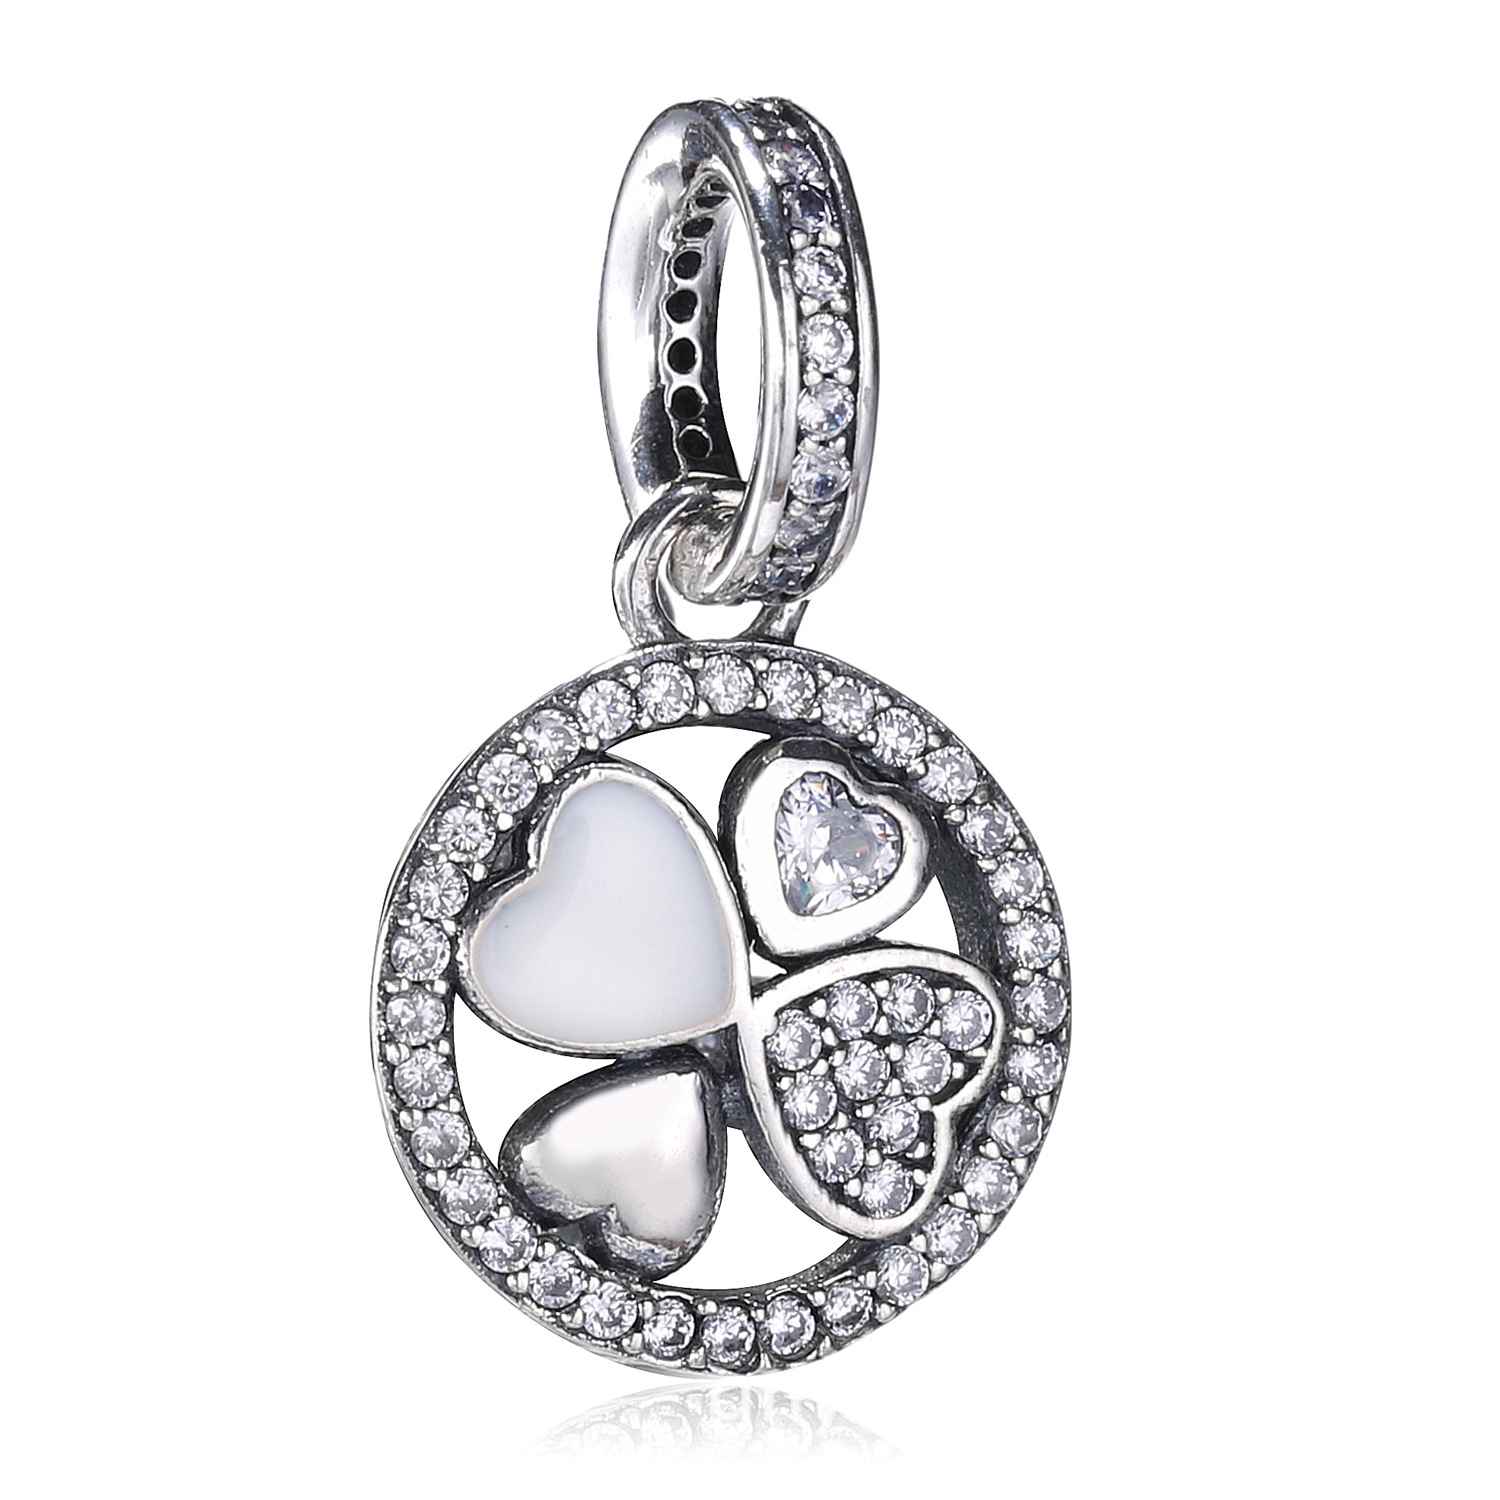 2017 Summer 925 Sterling Silver Four Clover Beads Pendant Crystal Charms Fit Original Pandora Charm Bracelet DIY Jewelry Making